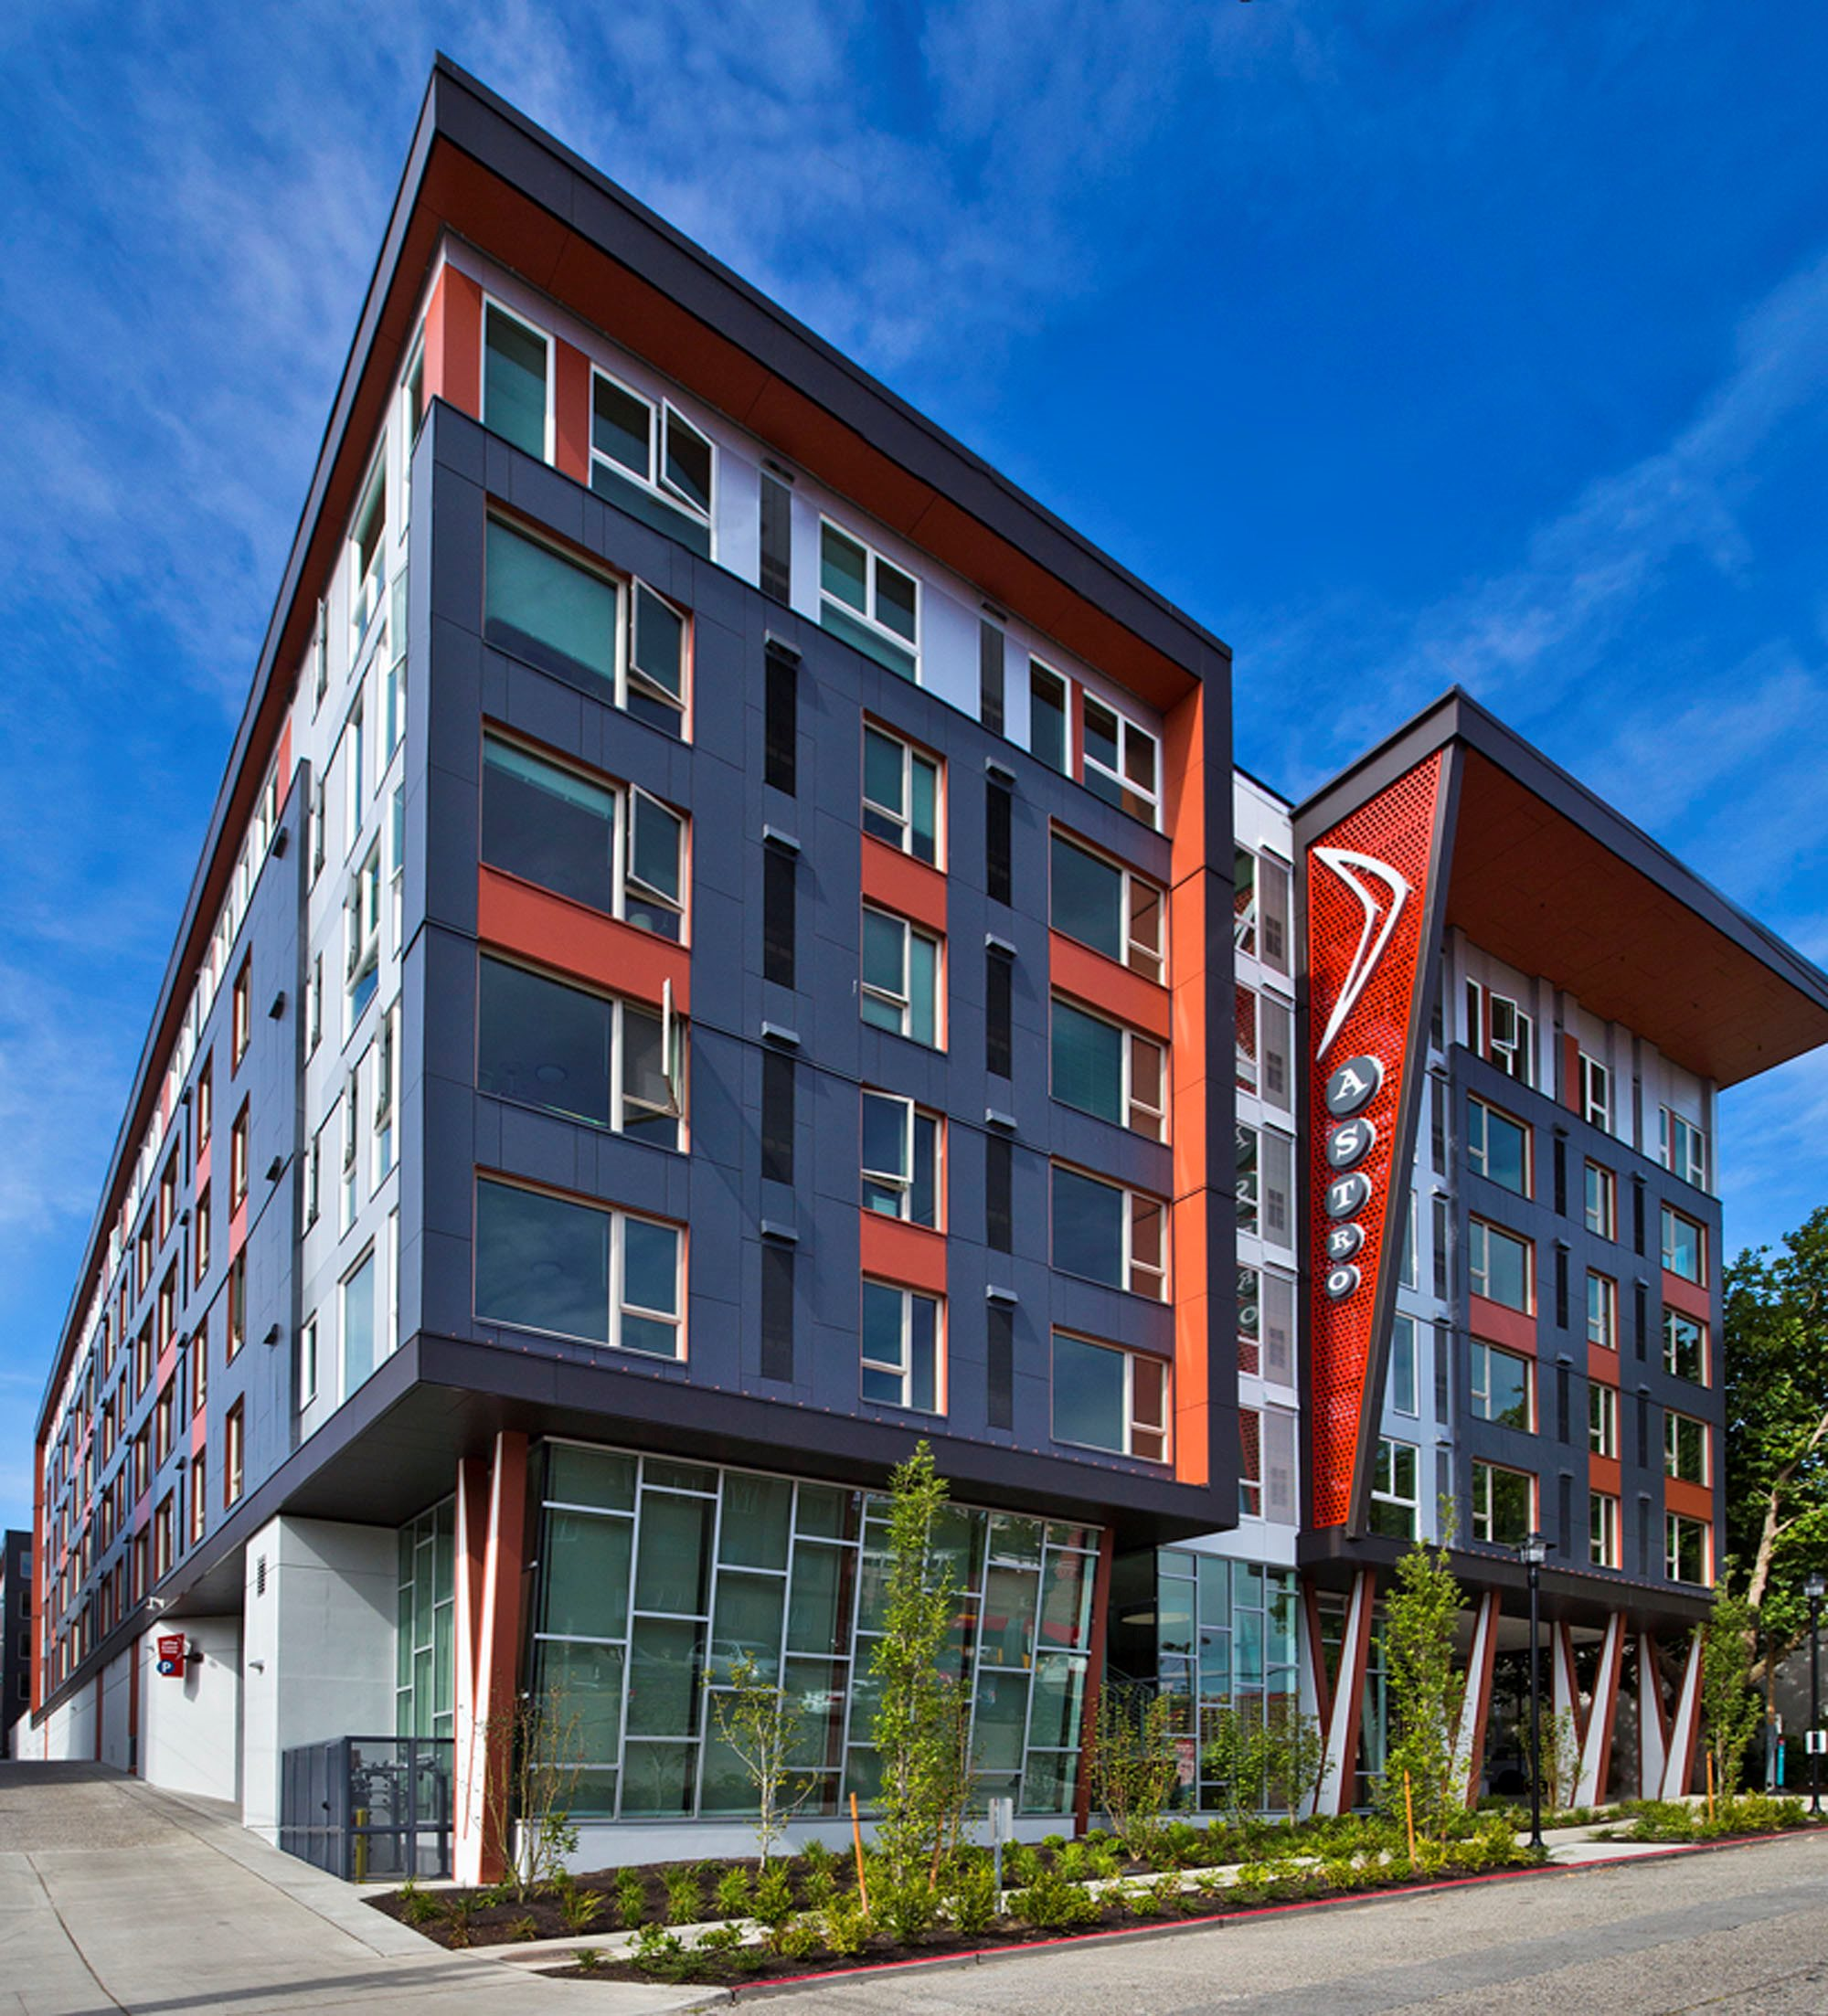 Local Rental Properties: Astro Apartments, Seattle Washington (WA)